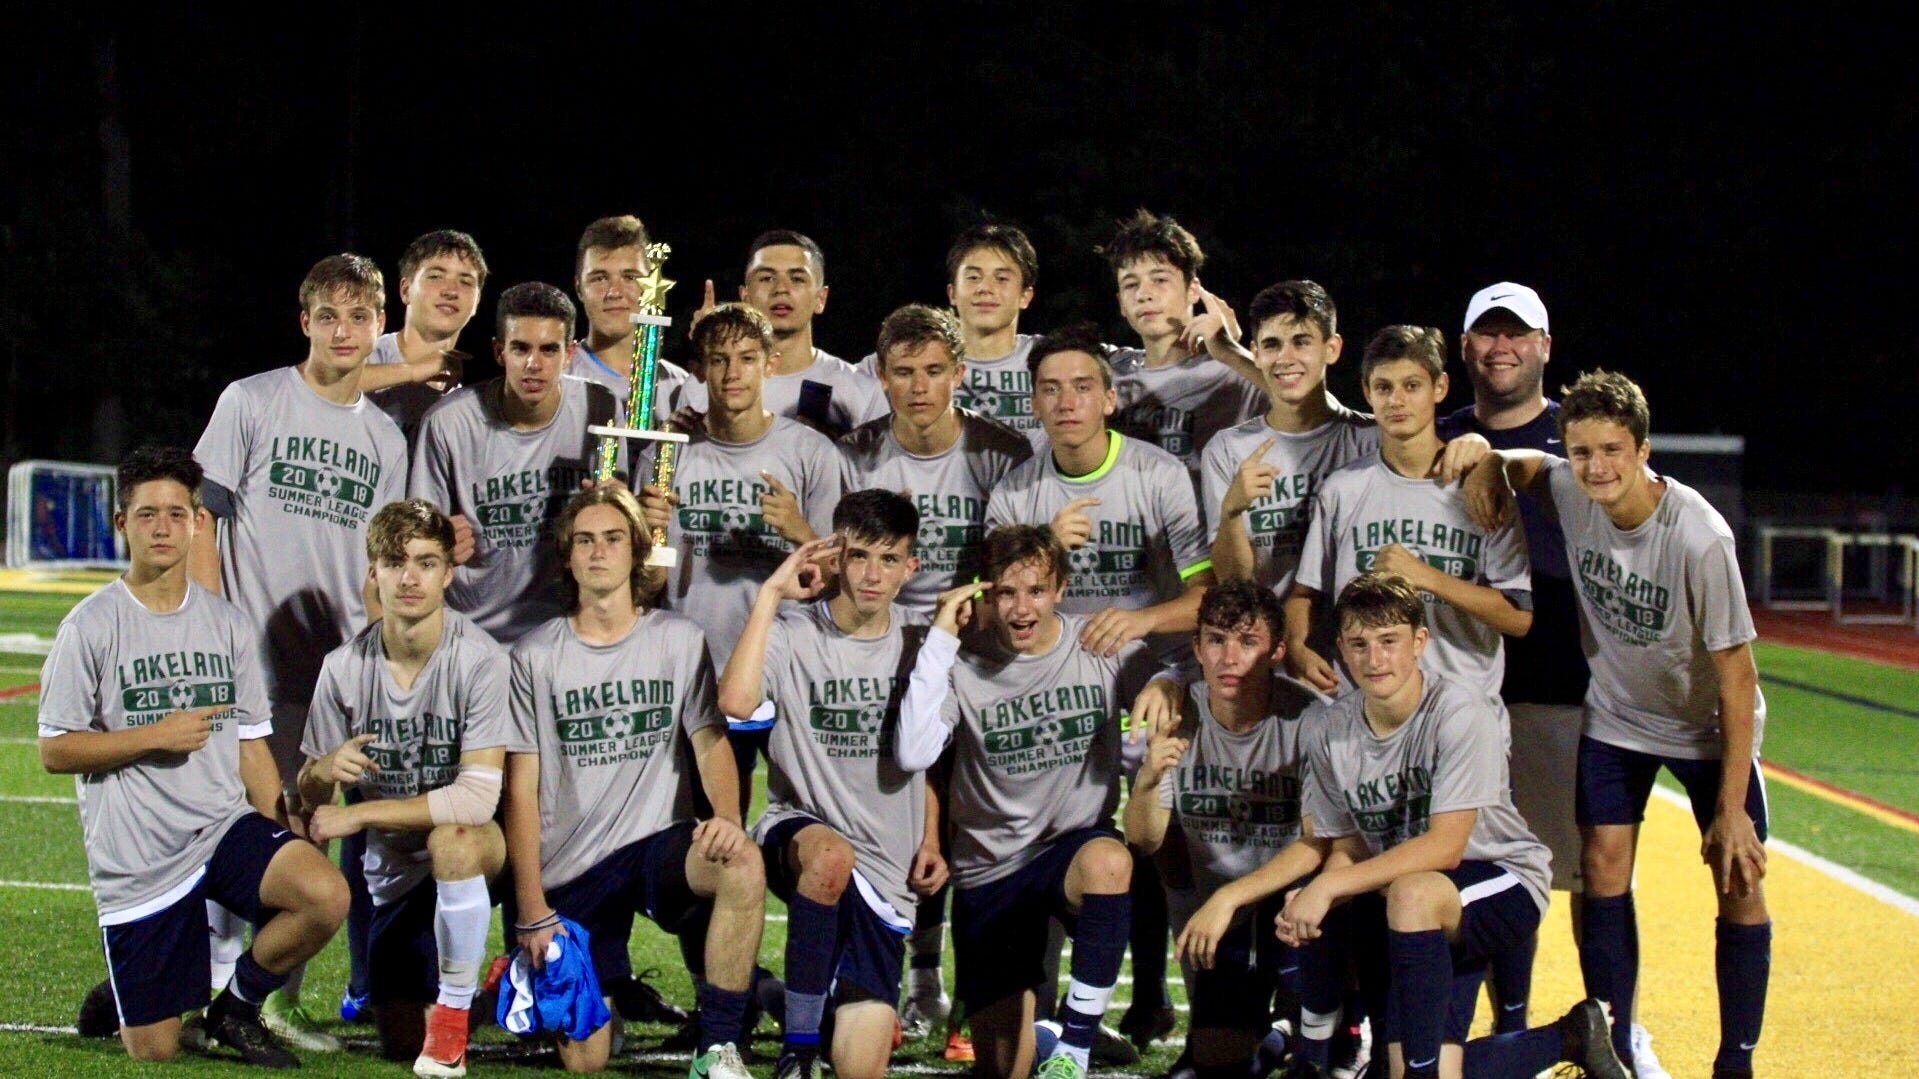 The John Jay boys soccer team poses after taking first place in the Lakeland soccer summer league in July.